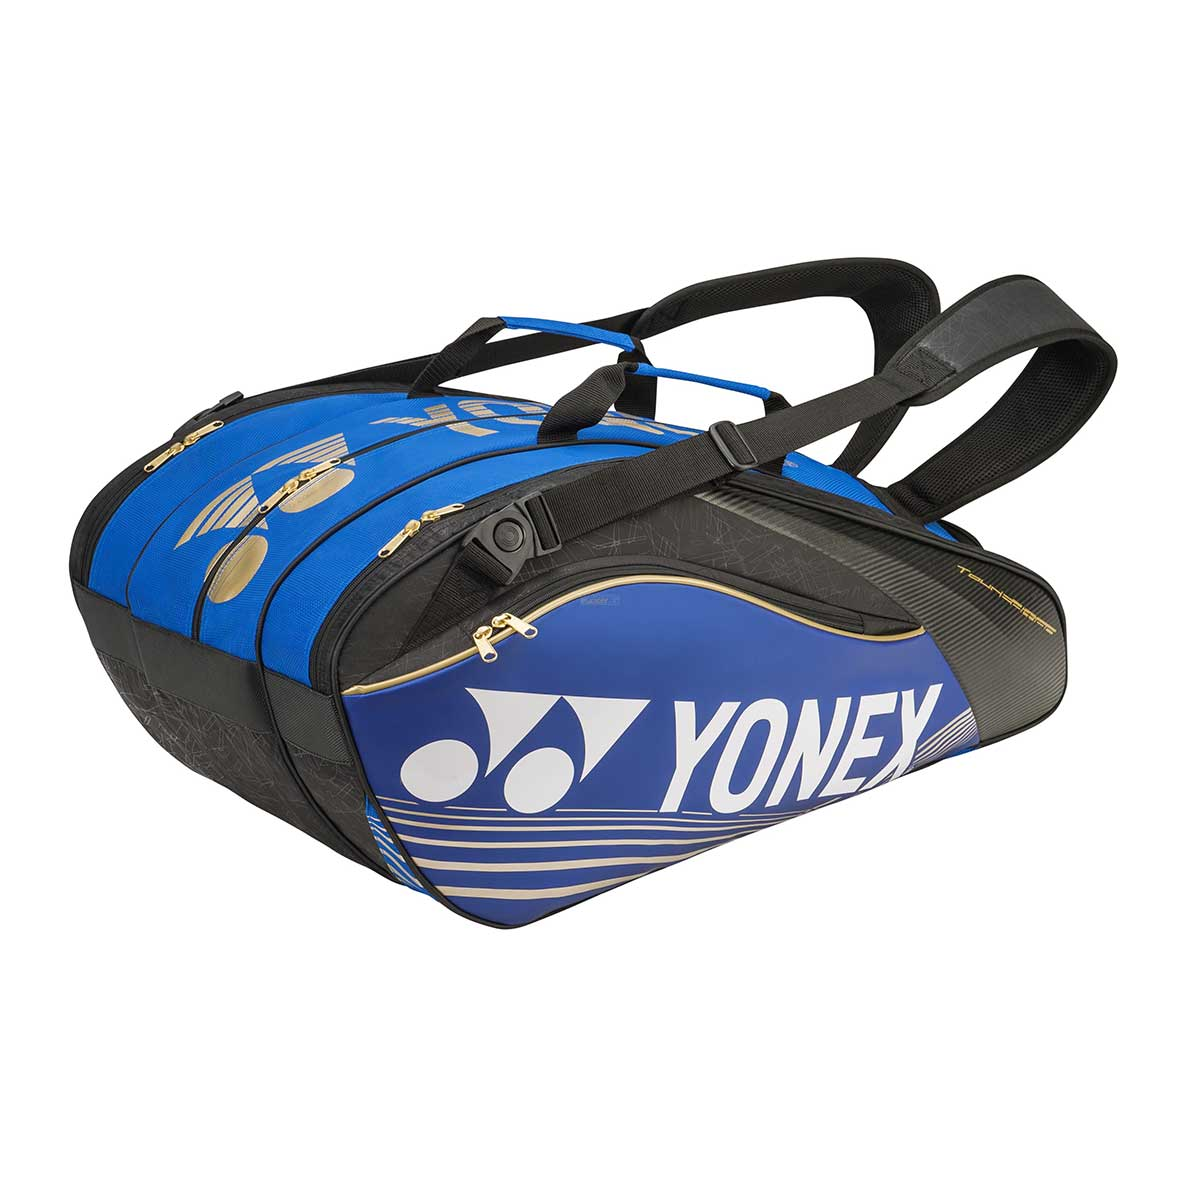 4f9633534fa Buy YONEX SUNR 9629TG BT9 Badminton Kit Bag (Blue) Online